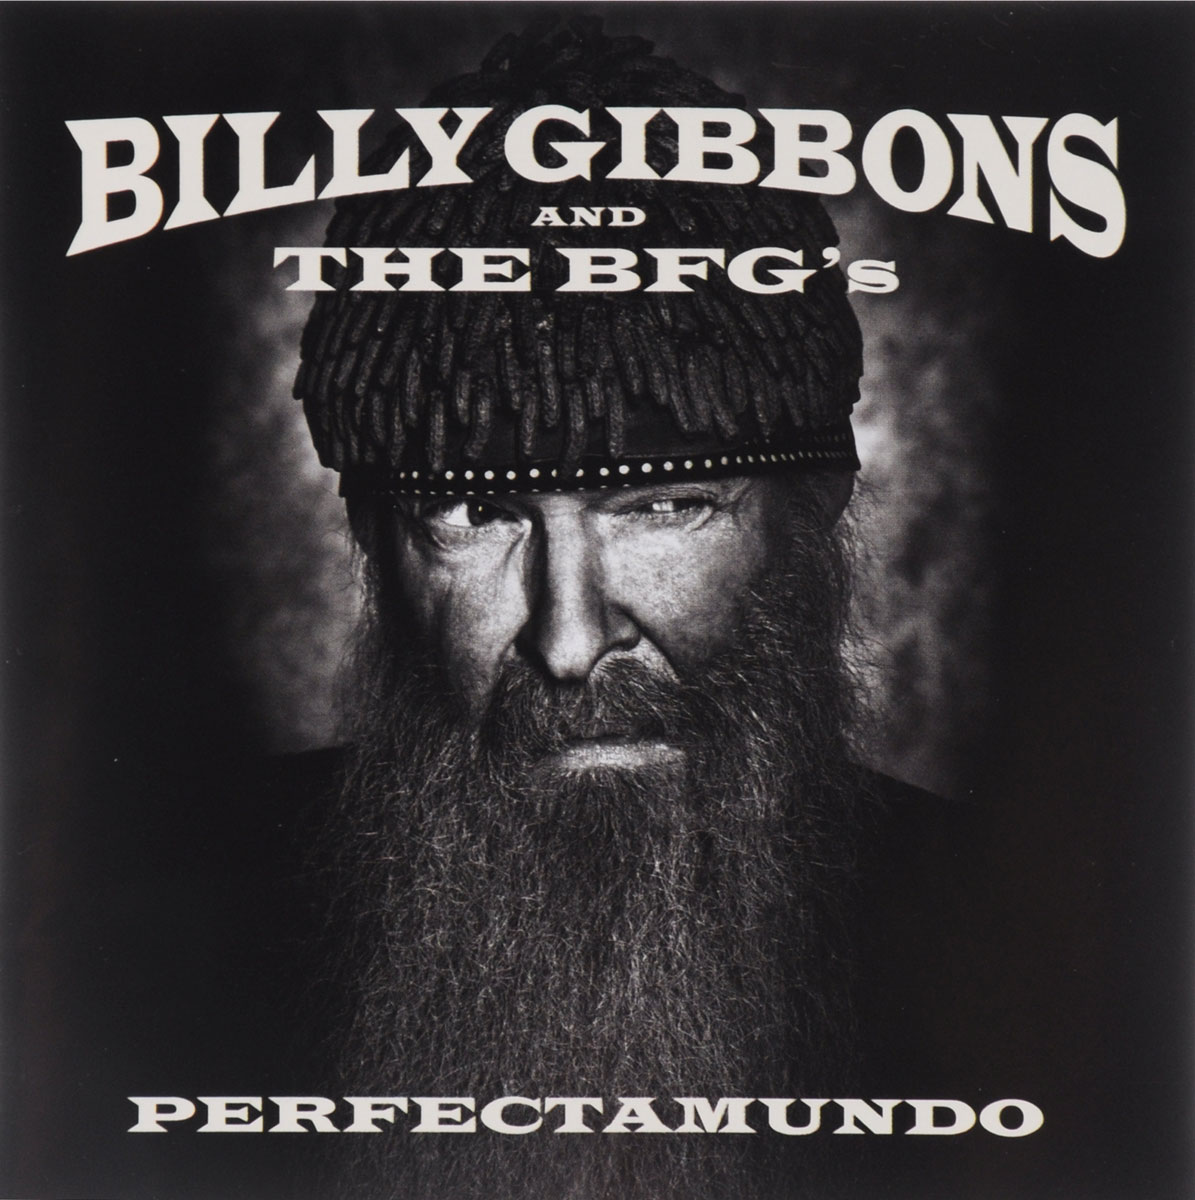 Billy Gibbons And The BFG's Billy Gibbons And The BFG's. Perfectamundo billy gibbons billy gibbons big bad blues